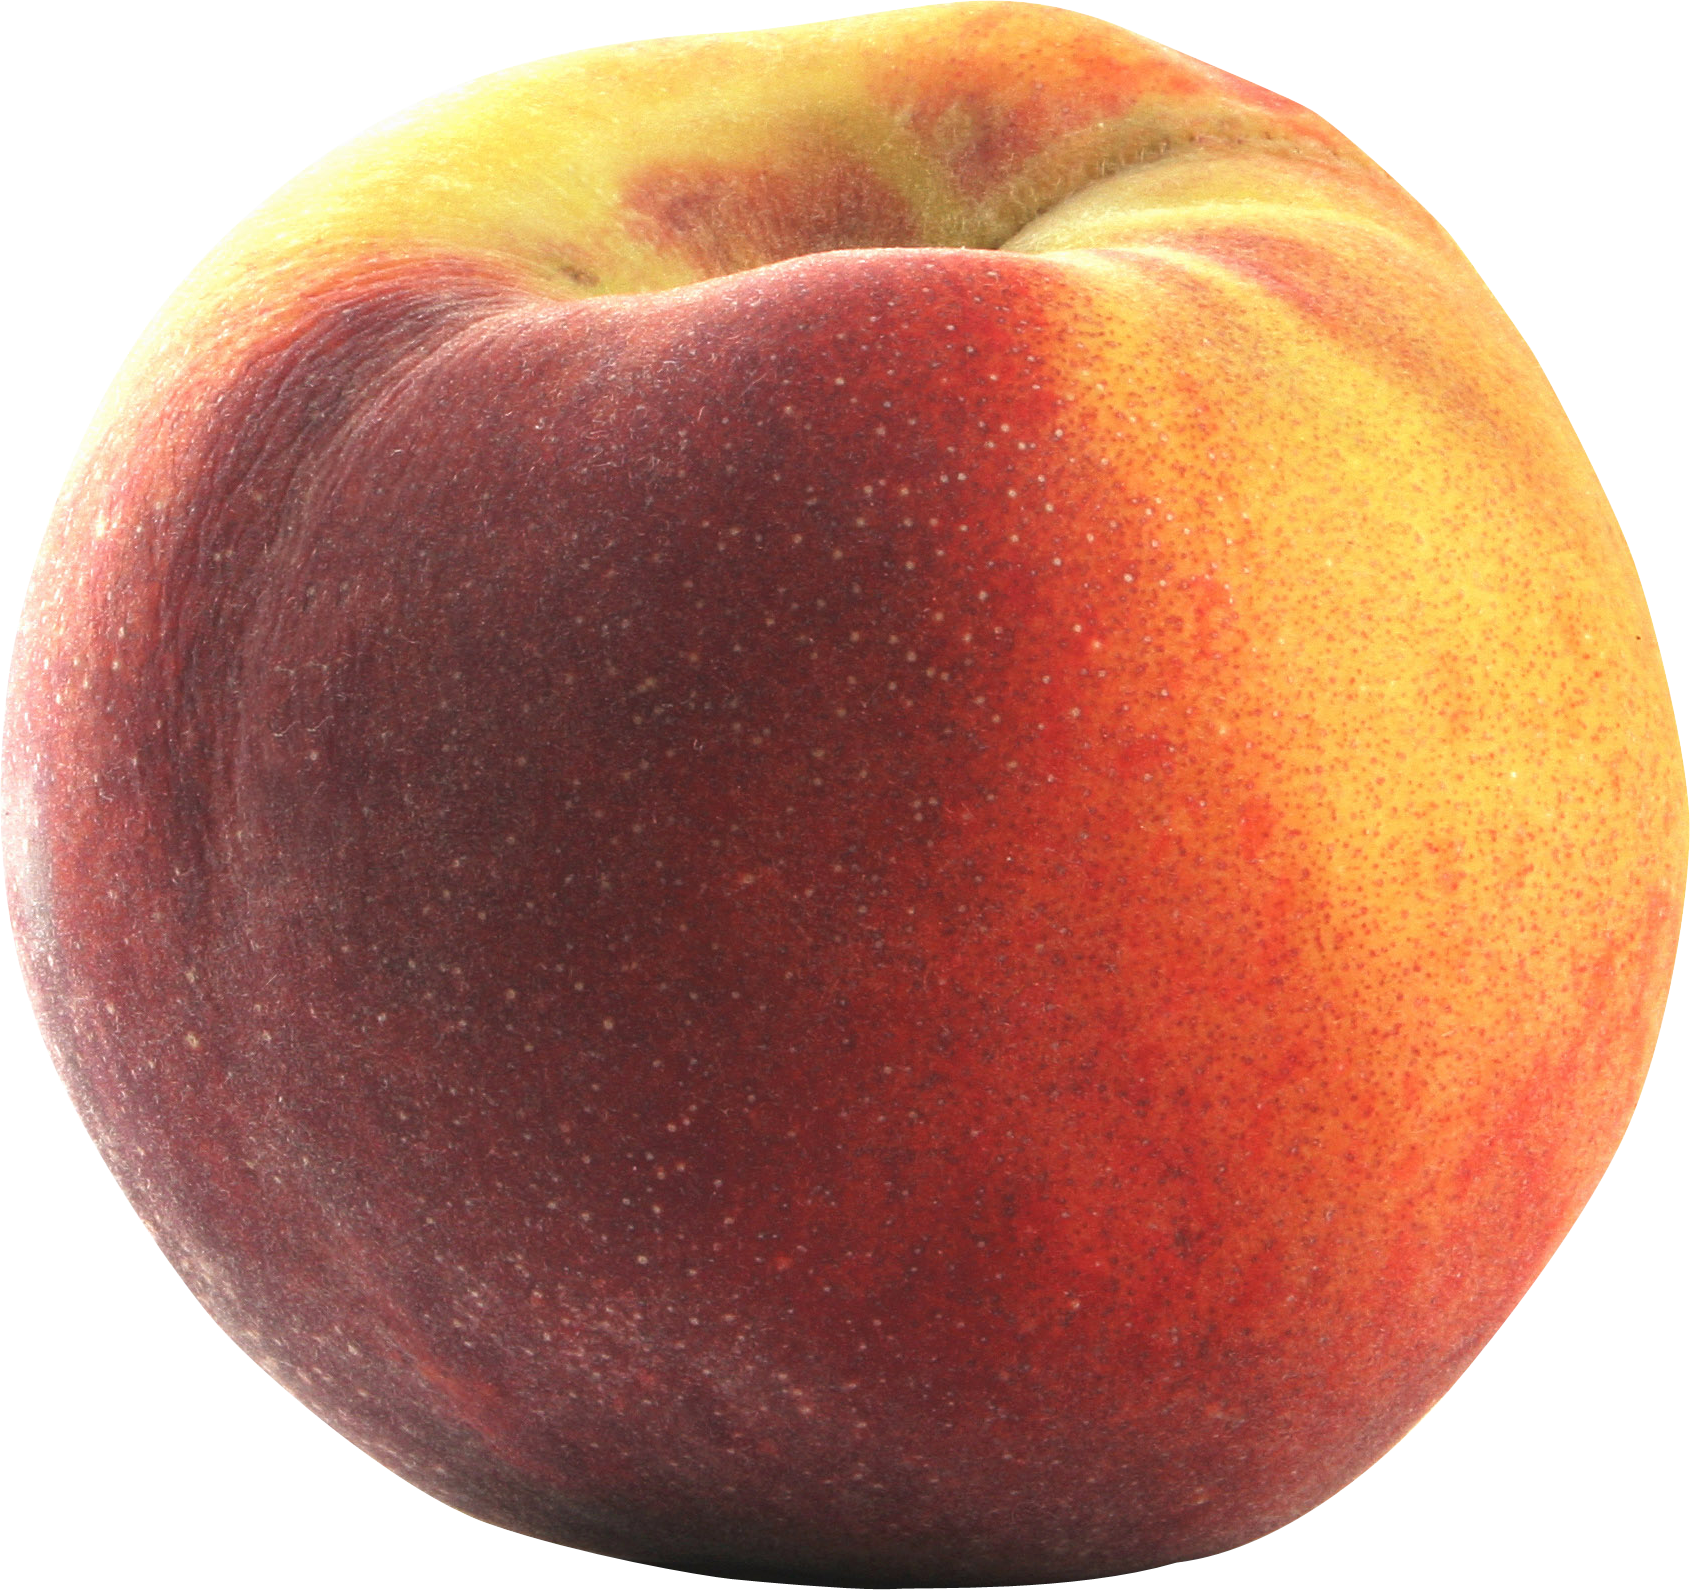 Peach PNG image - Peach PNG